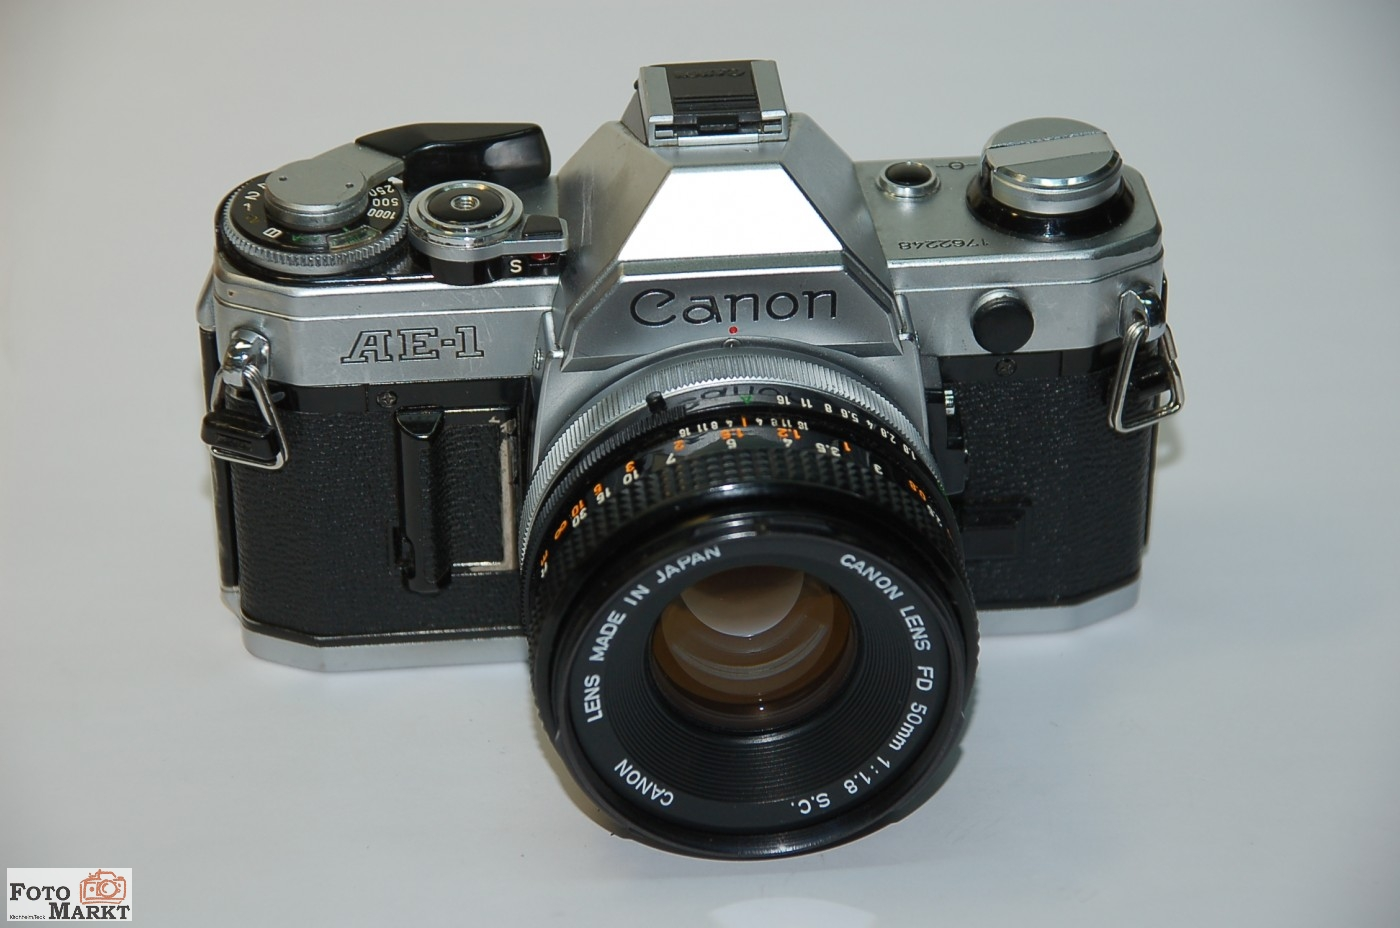 Canon ae 1 objectif fd nex 1 8 50mm s for Objectif miroir 50mm